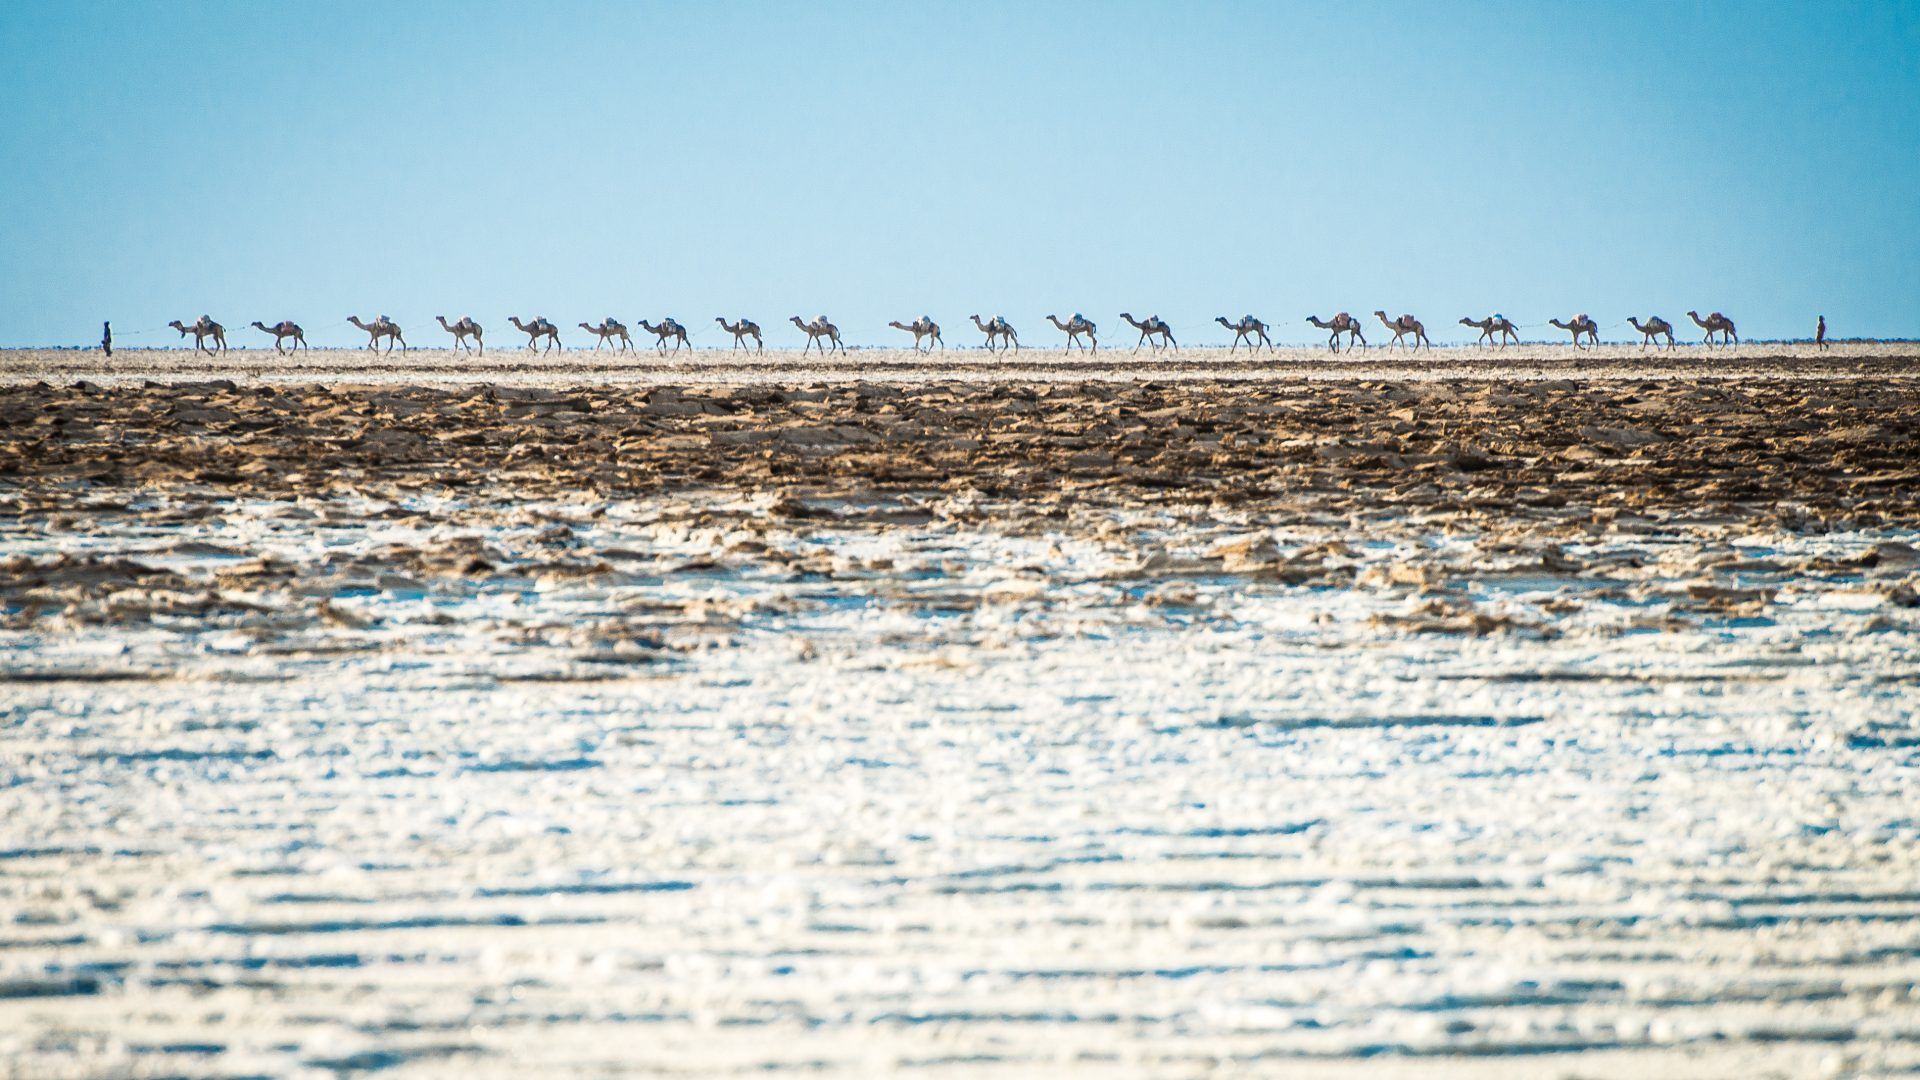 Camel handlers walk their camels across the salt plains of the Danakil Depression in Ethiopia.